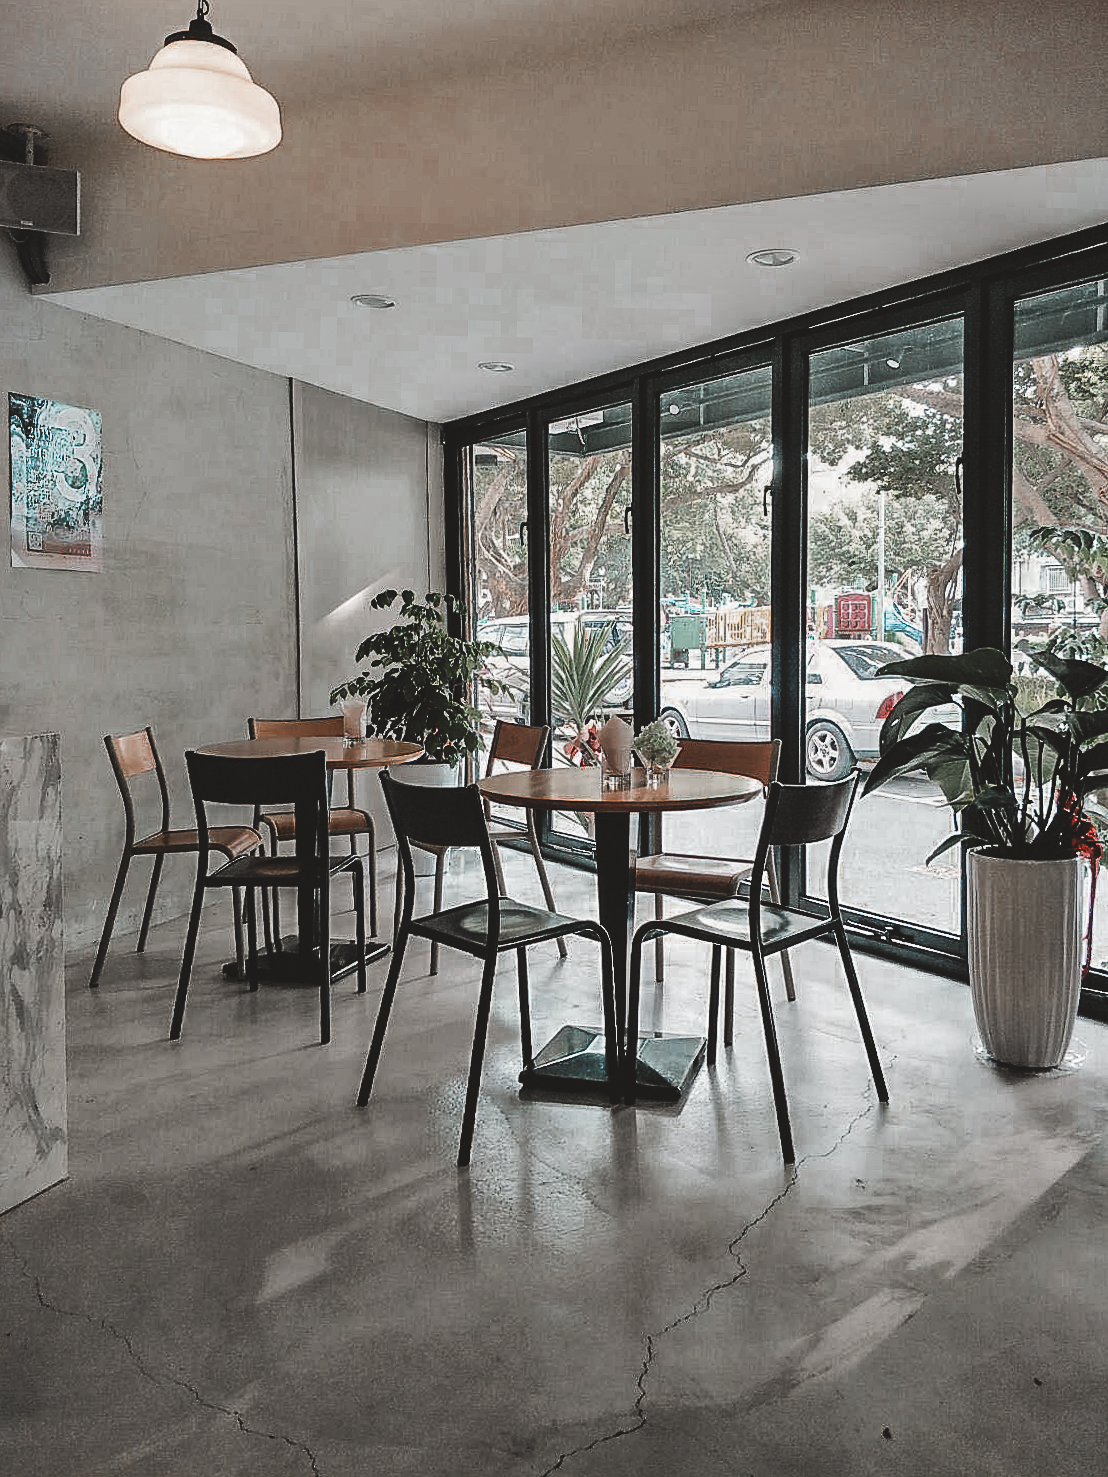 Charming Chat Cafe 和攝影師早午餐 - Yes! Please Enjoy by Fanning Tseng.jpg